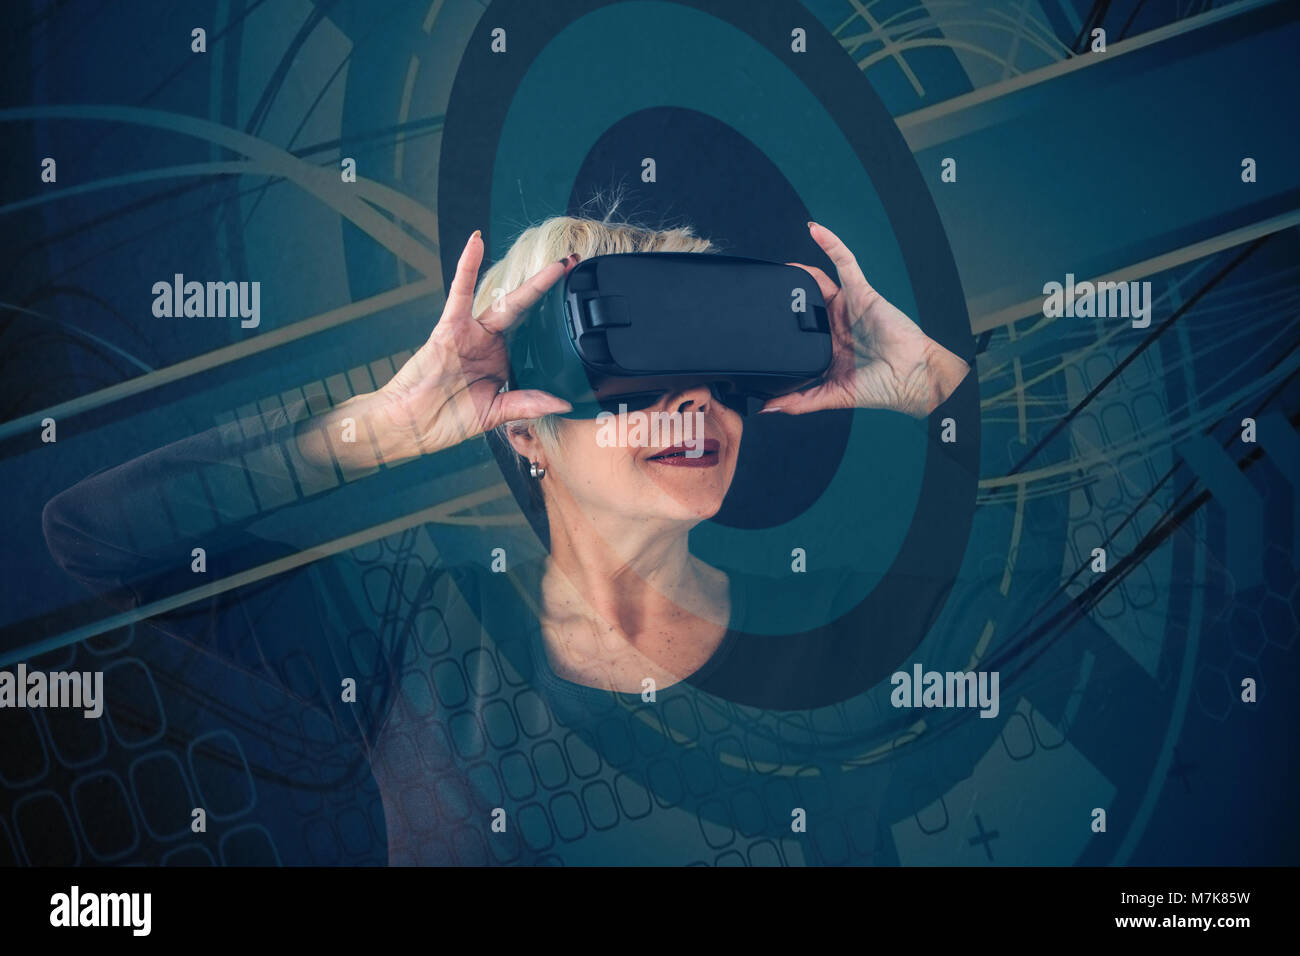 An elderly woman in virtual reality glasses. With visual effects. An elderly person using modern technology. - Stock Image